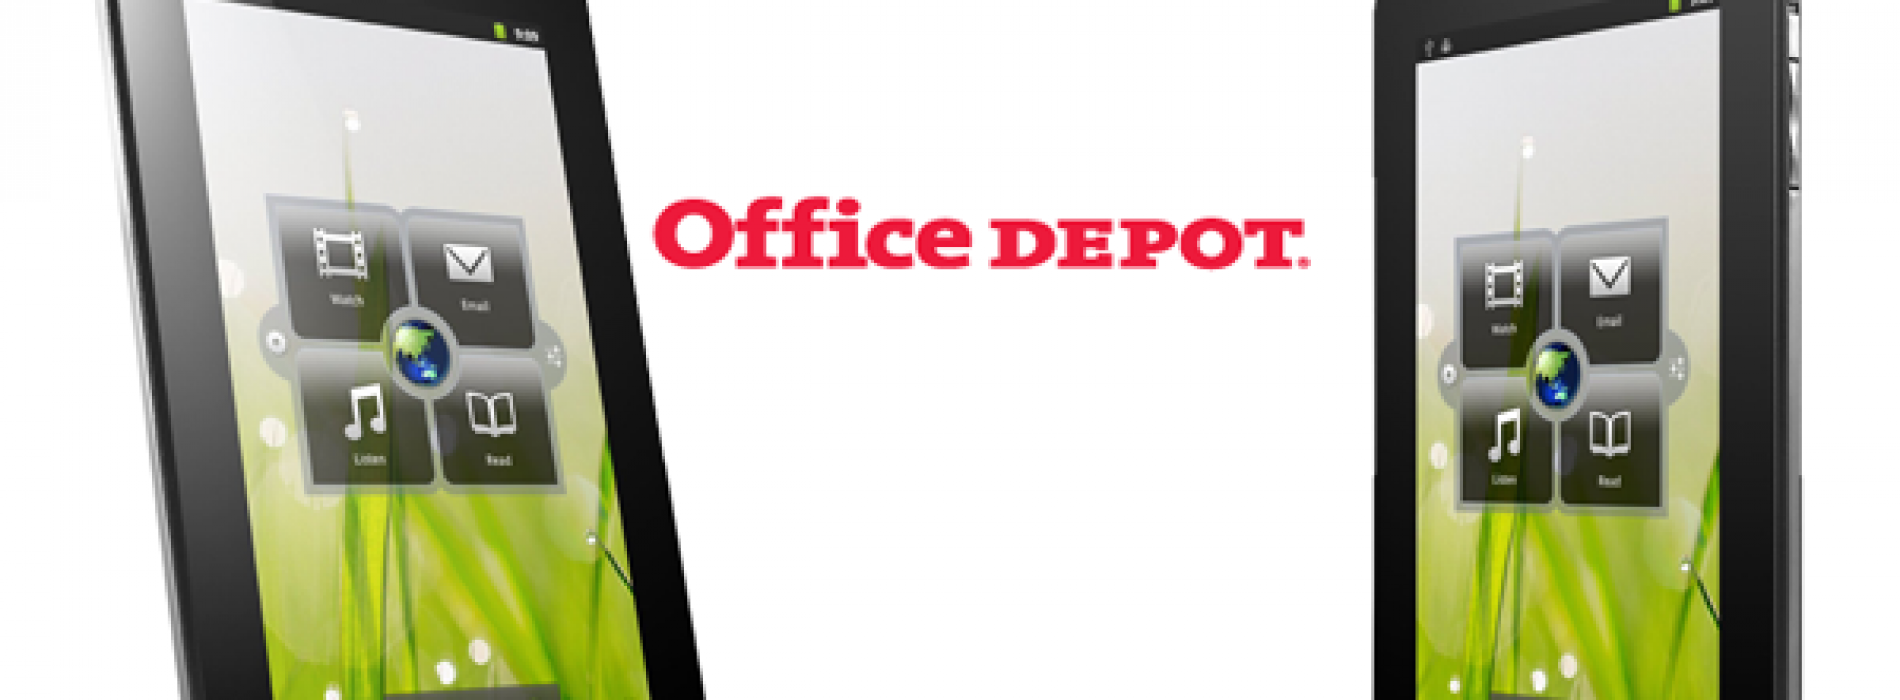 Office Depot now offering $199 Lenovo IdeaPad Tablet A1